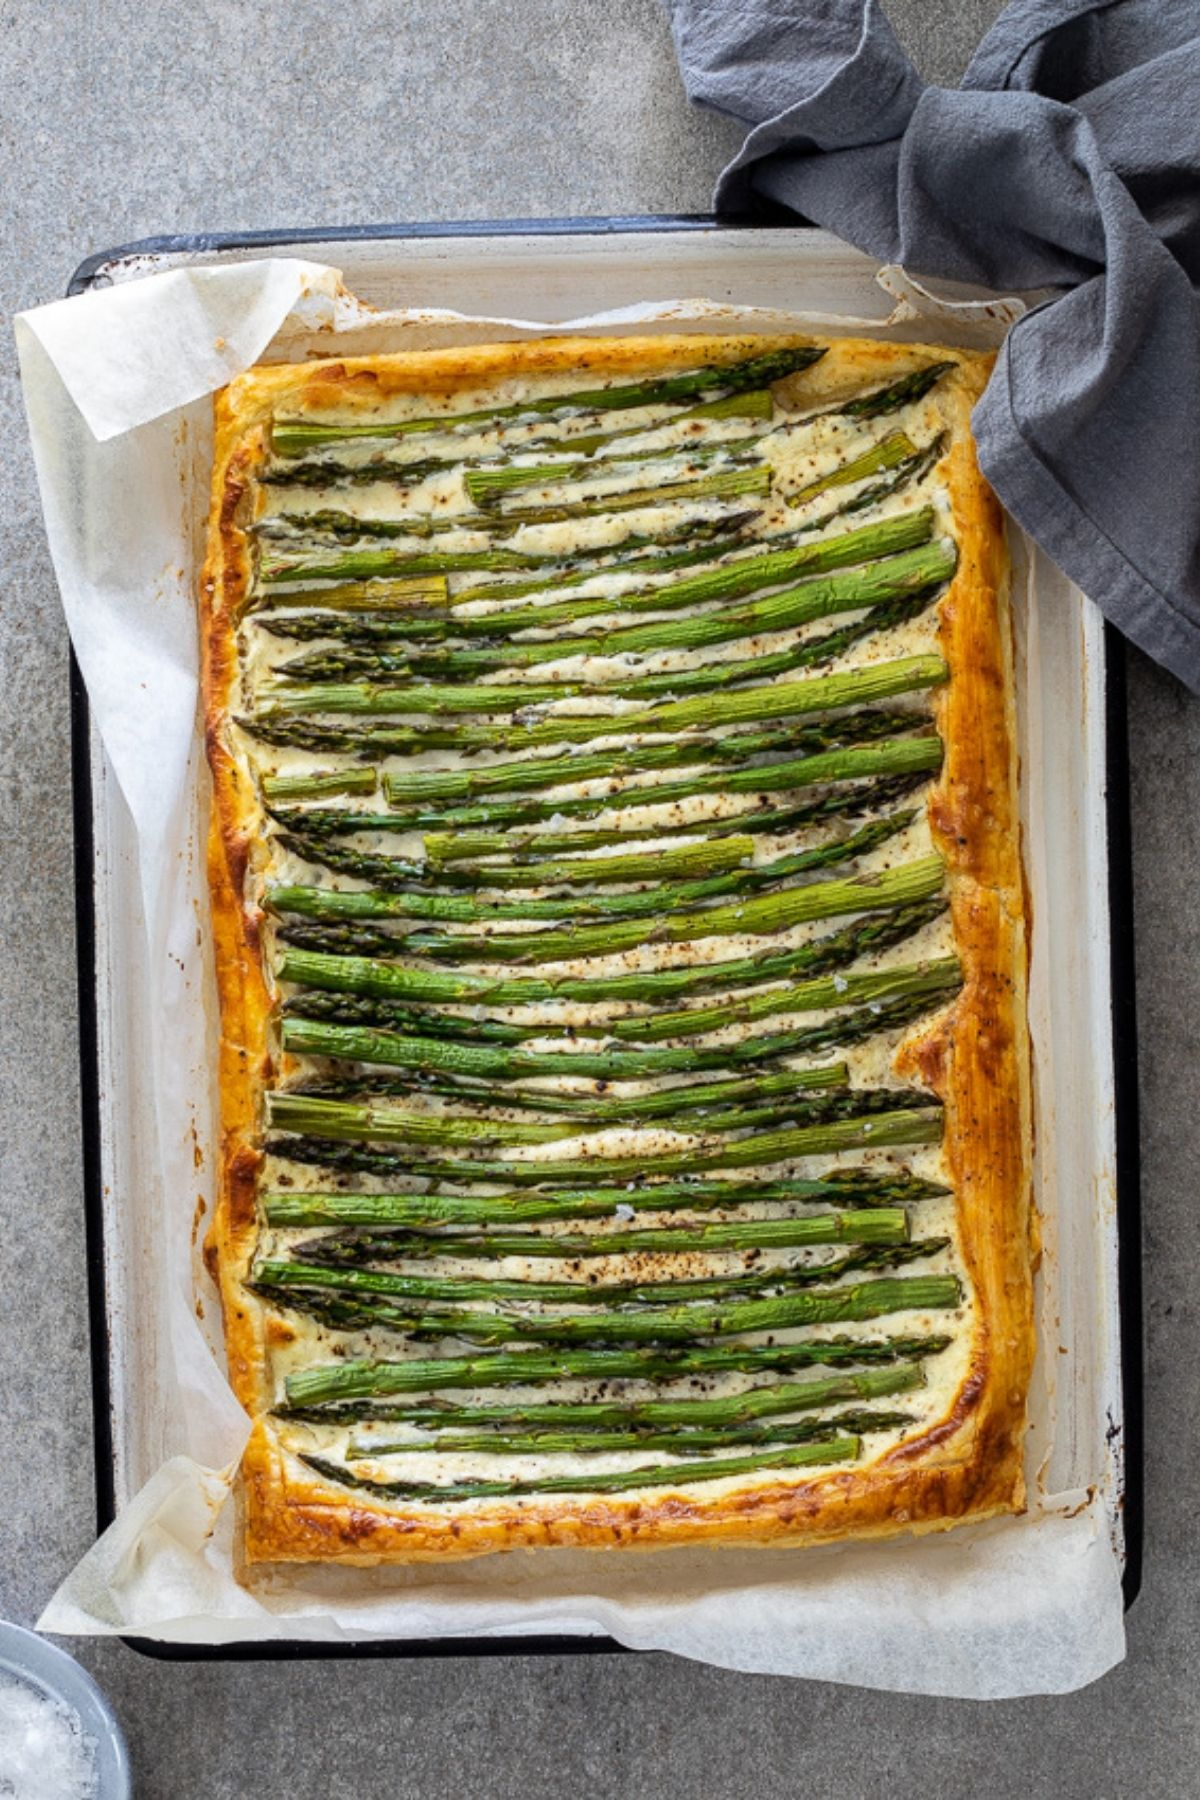 Asparagus tart on parchment paper on baking sheet